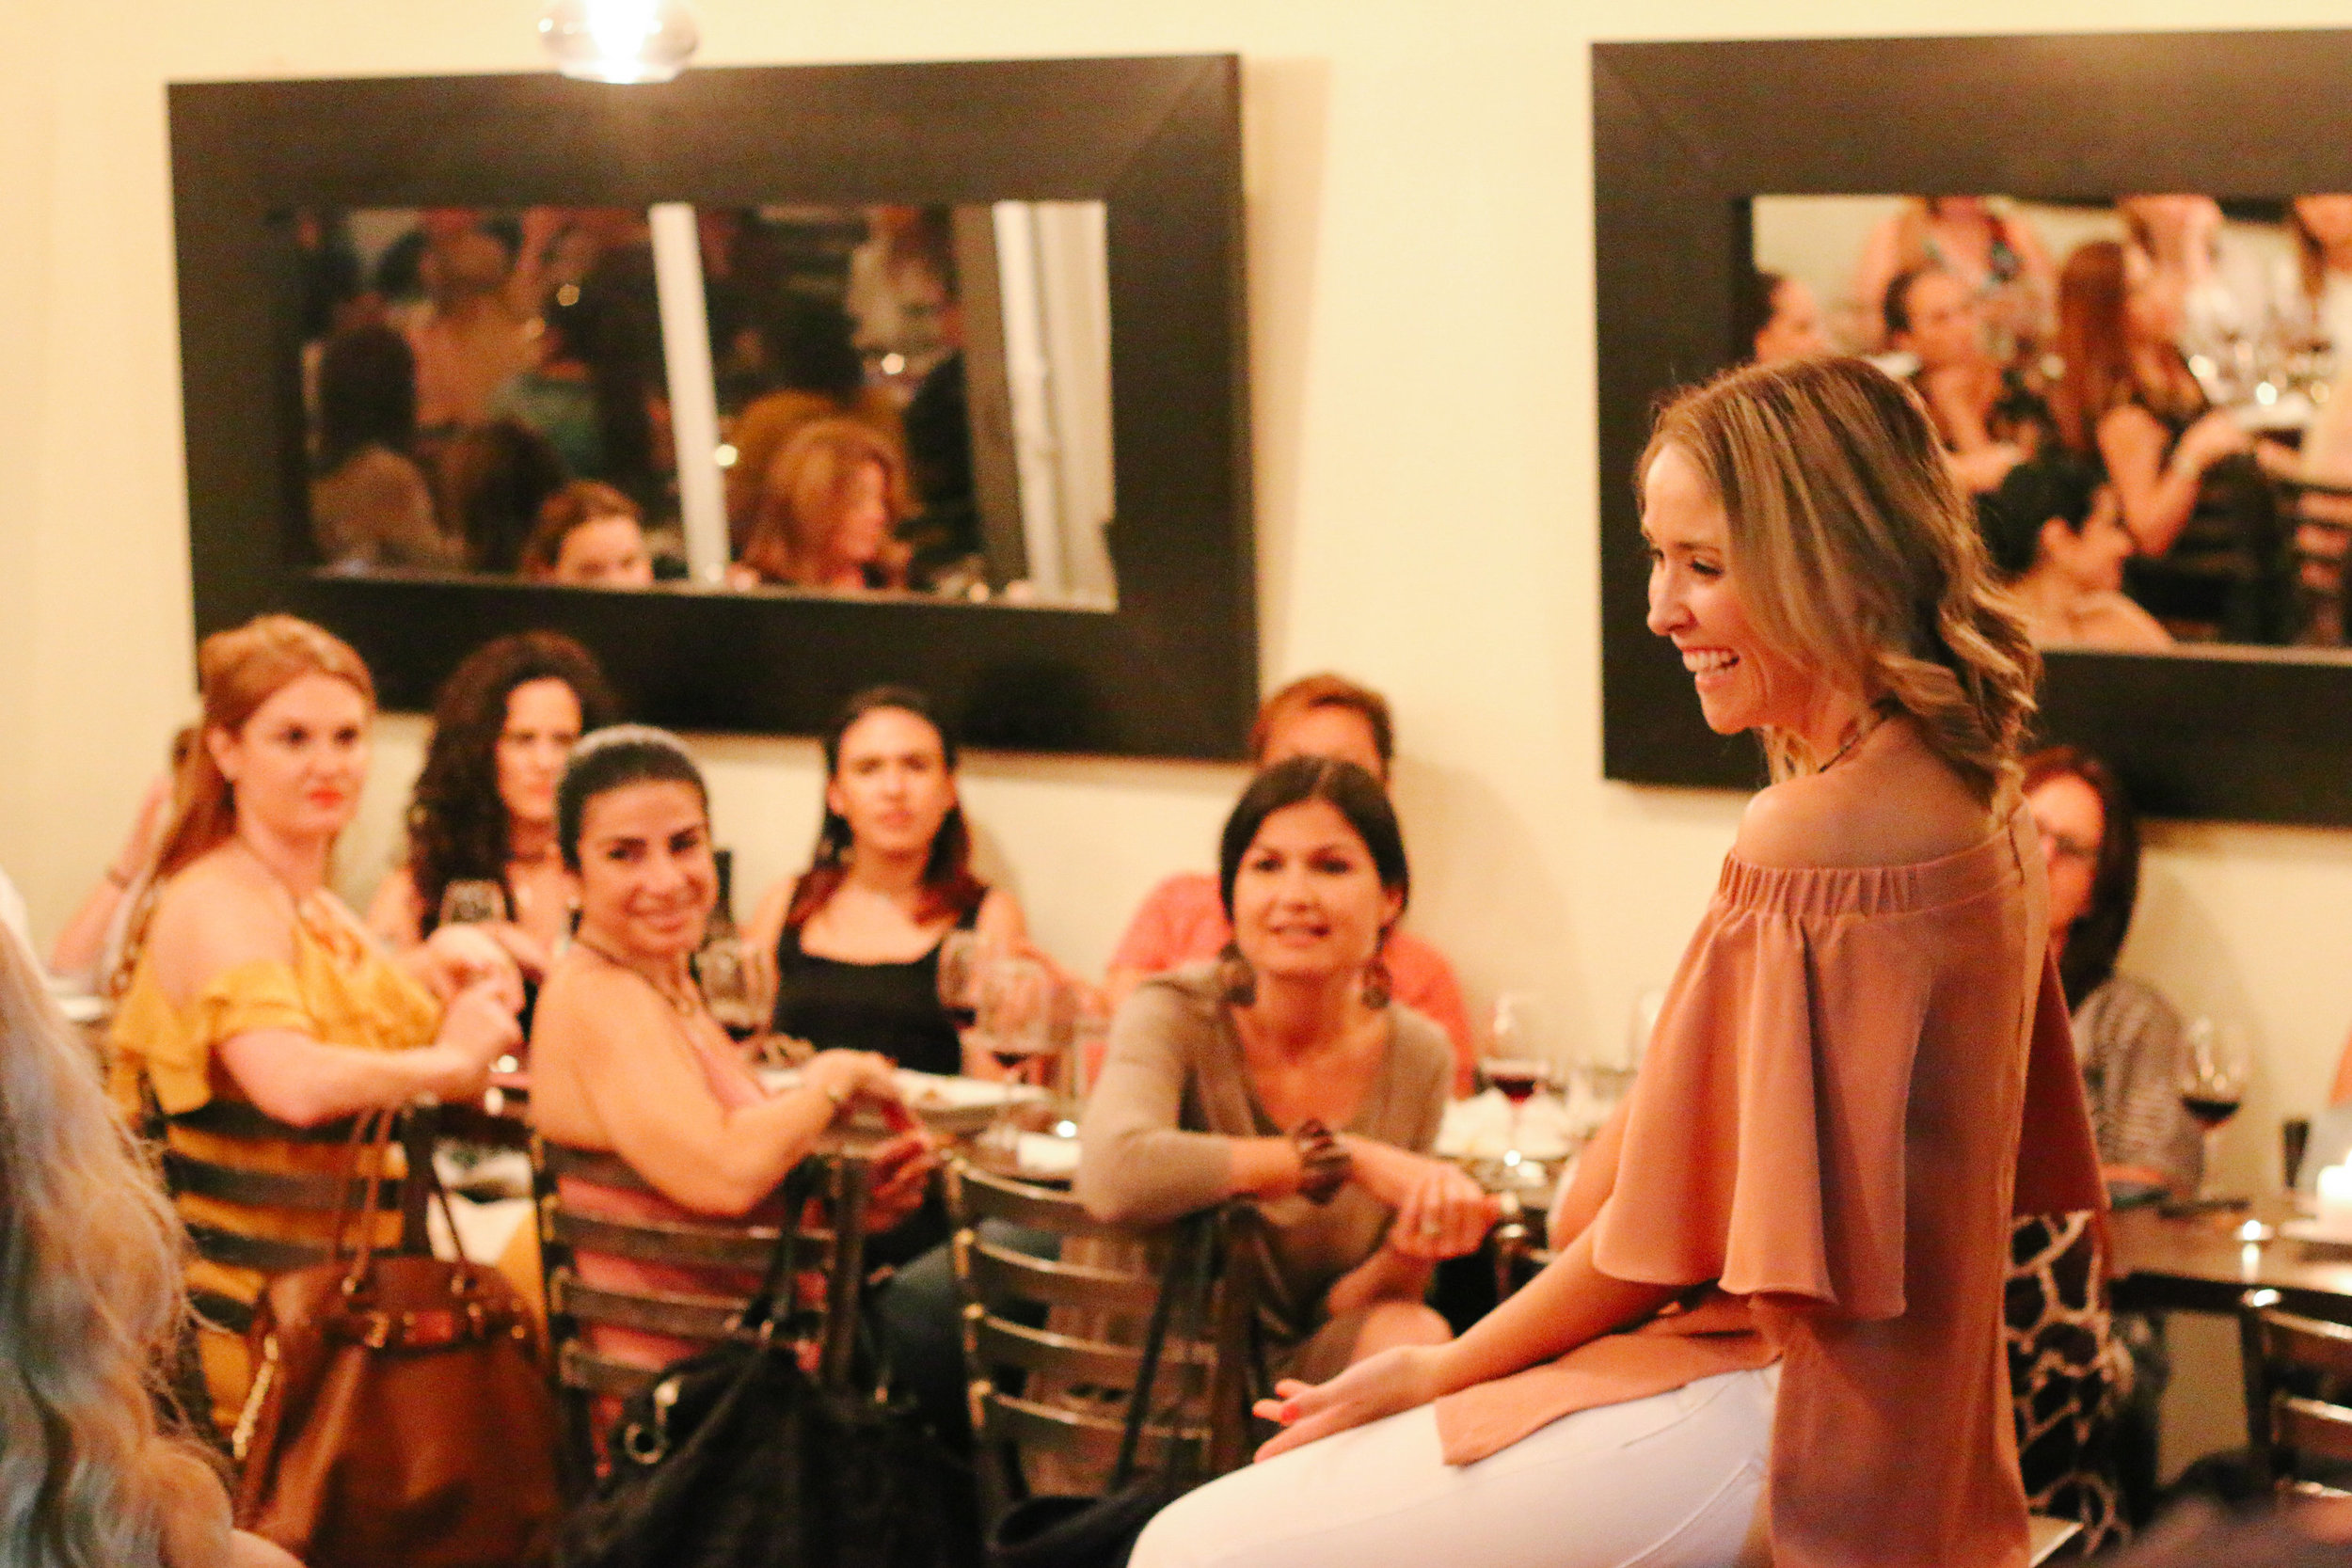 Women Who Wine_Uncorked Conversations_Off The Mile_Miami Wine Events_Wine Tasting Miami_77.jpg